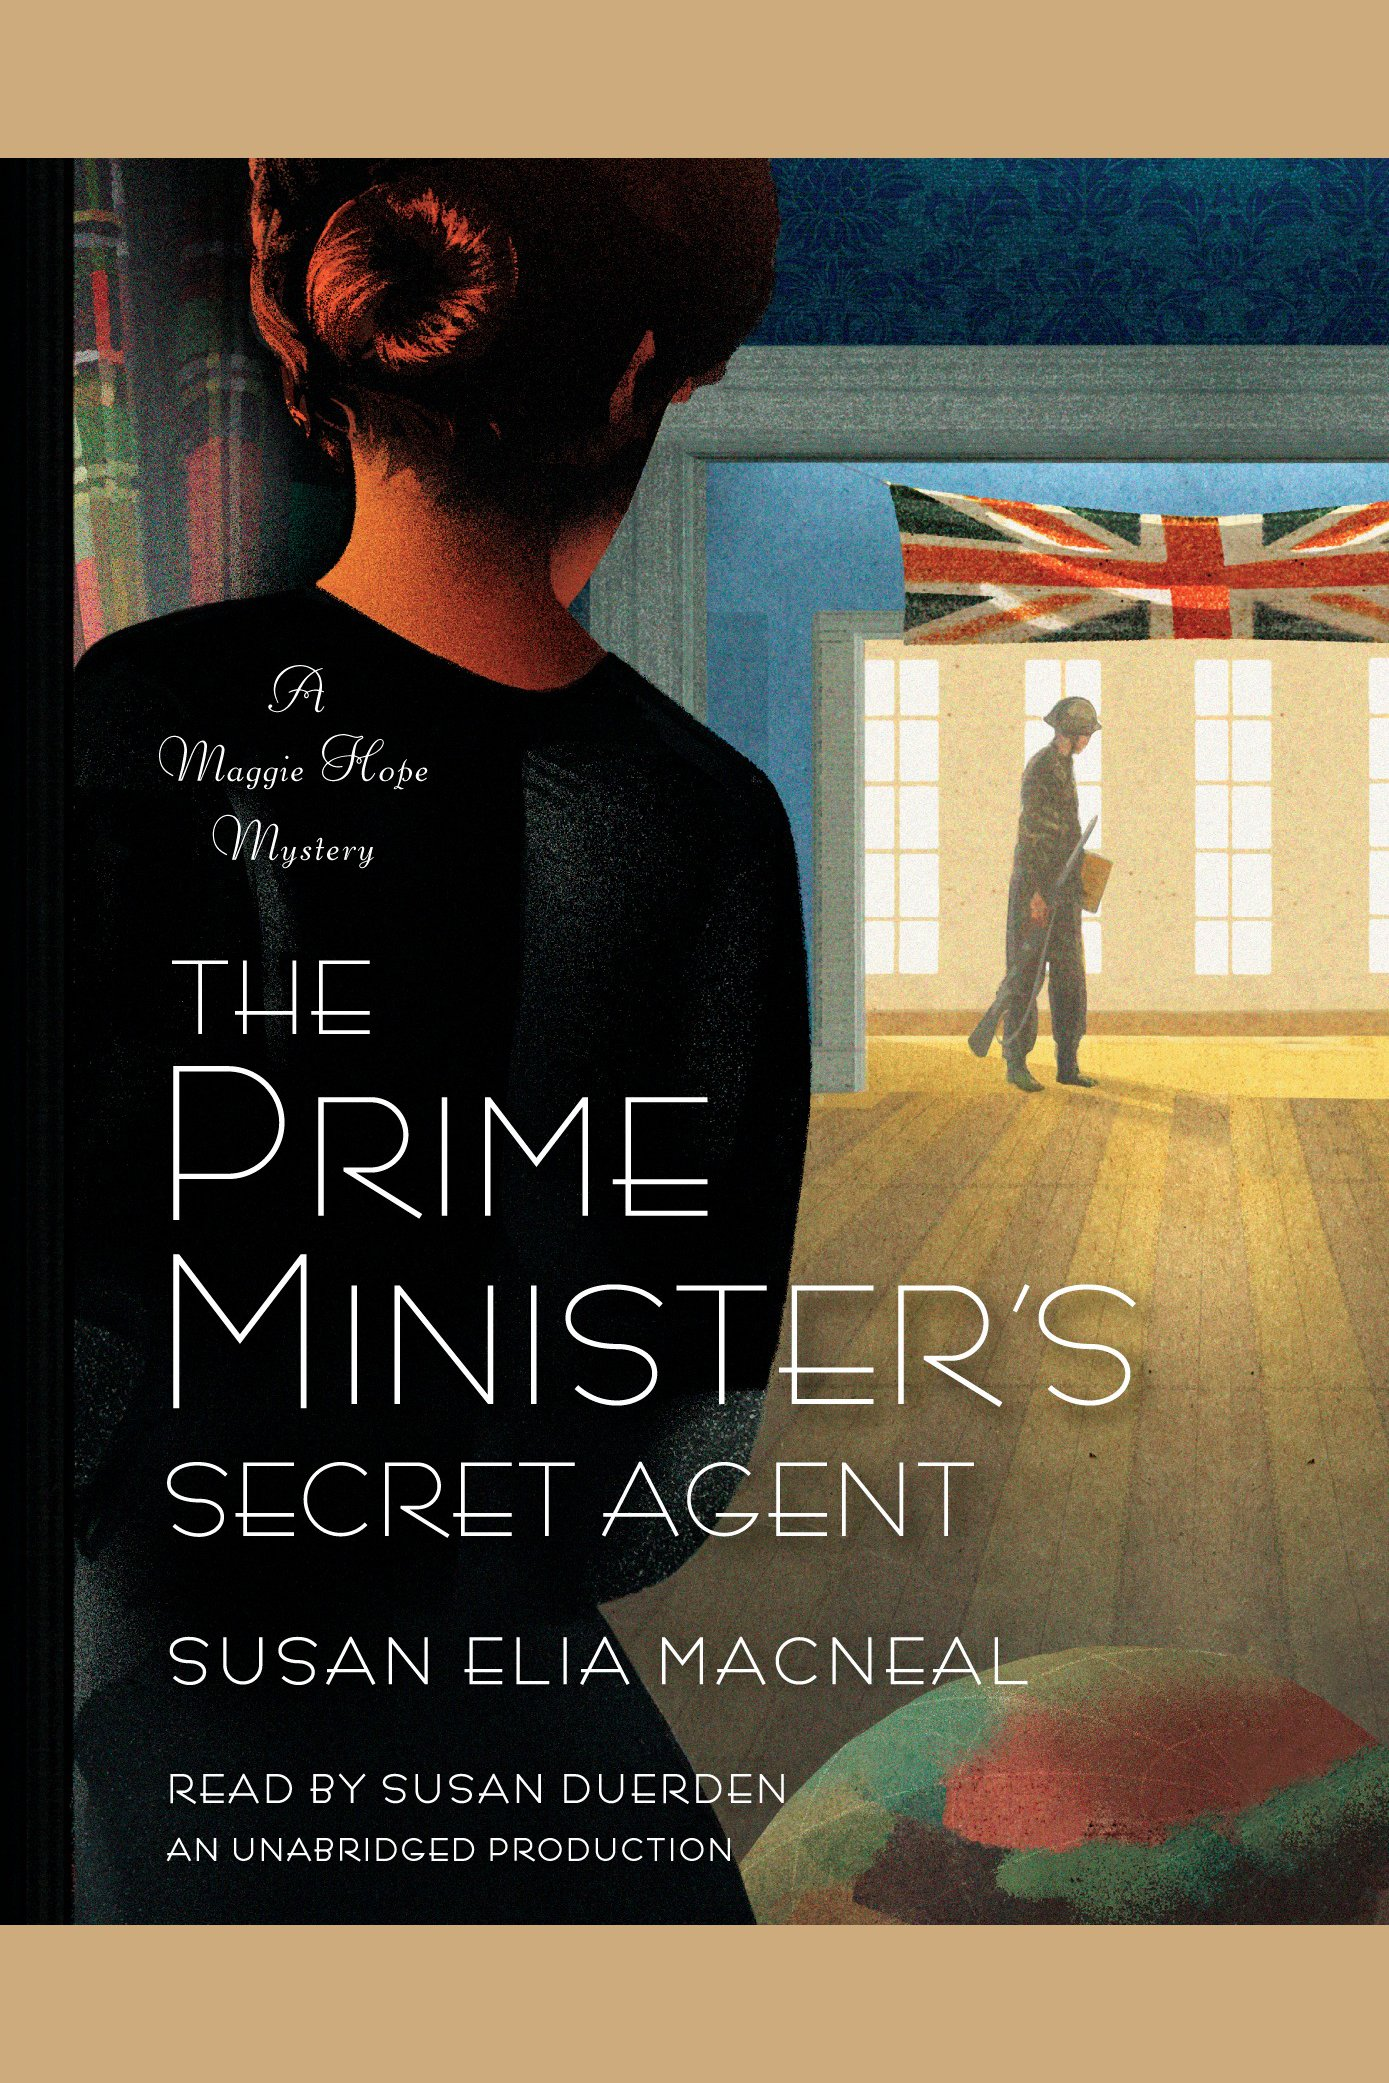 The Prime Minister's secret agent cover image